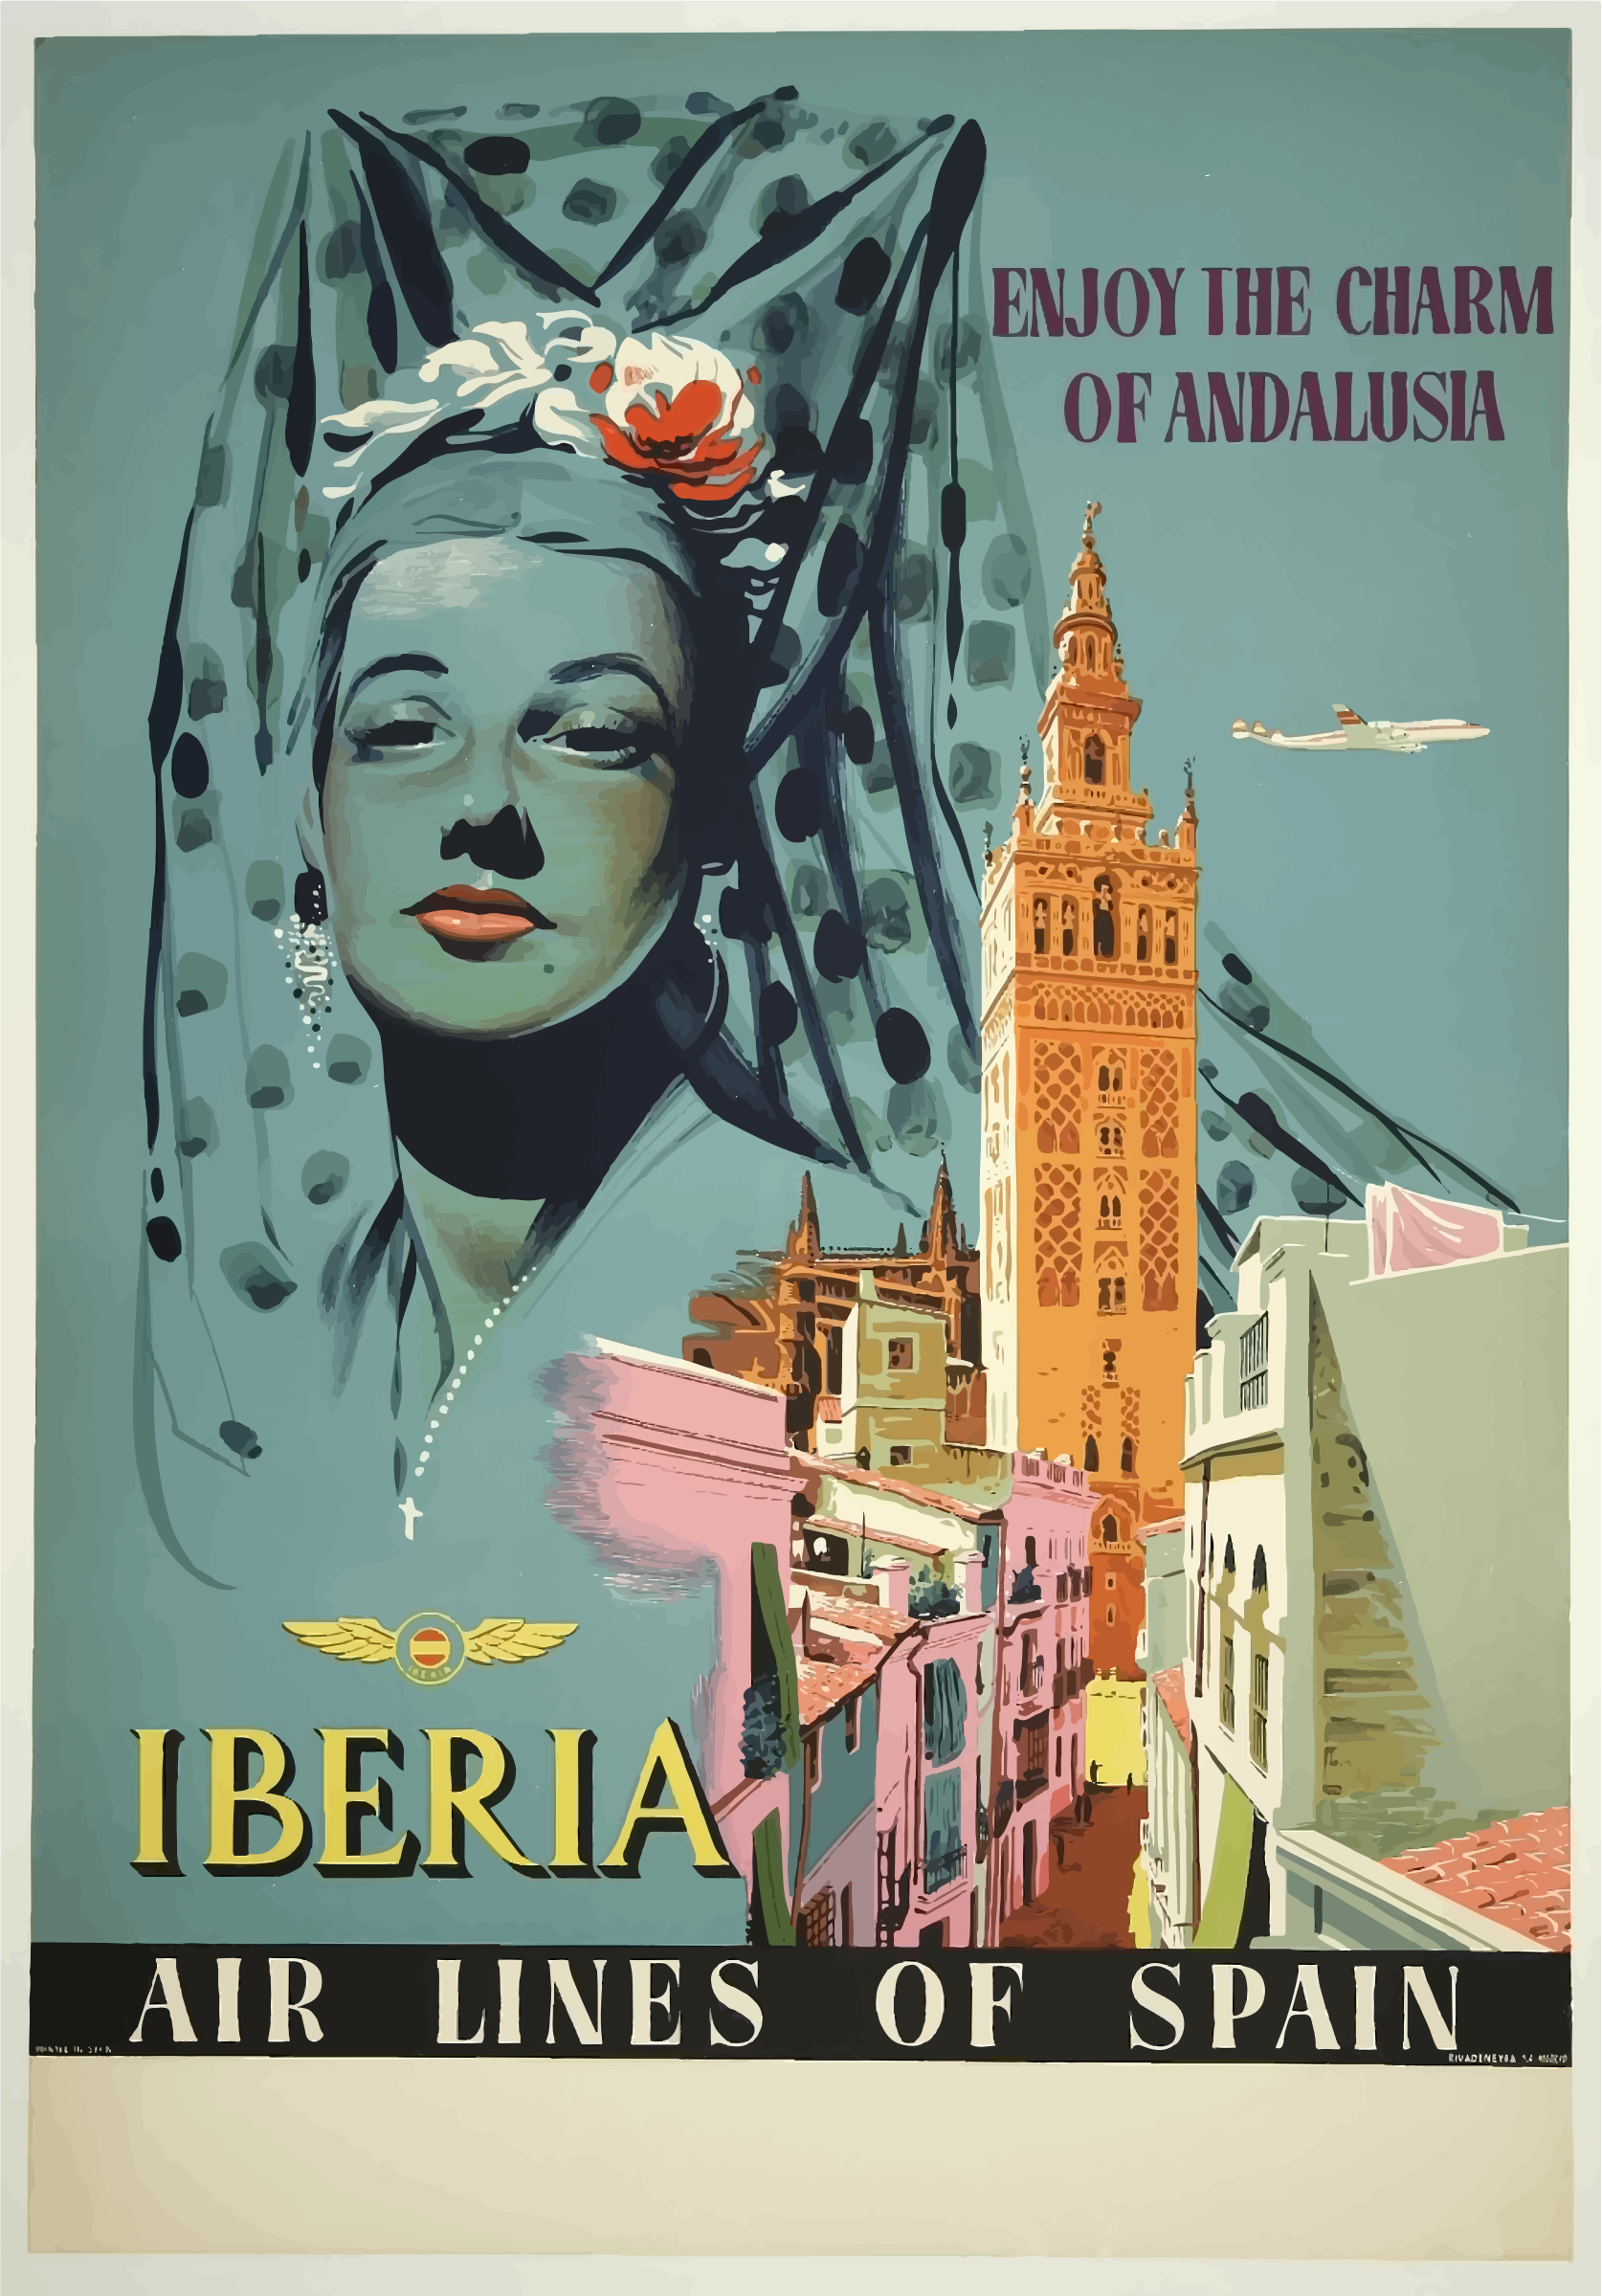 Vintage Travel Poster Andalusia Spain by GDJ